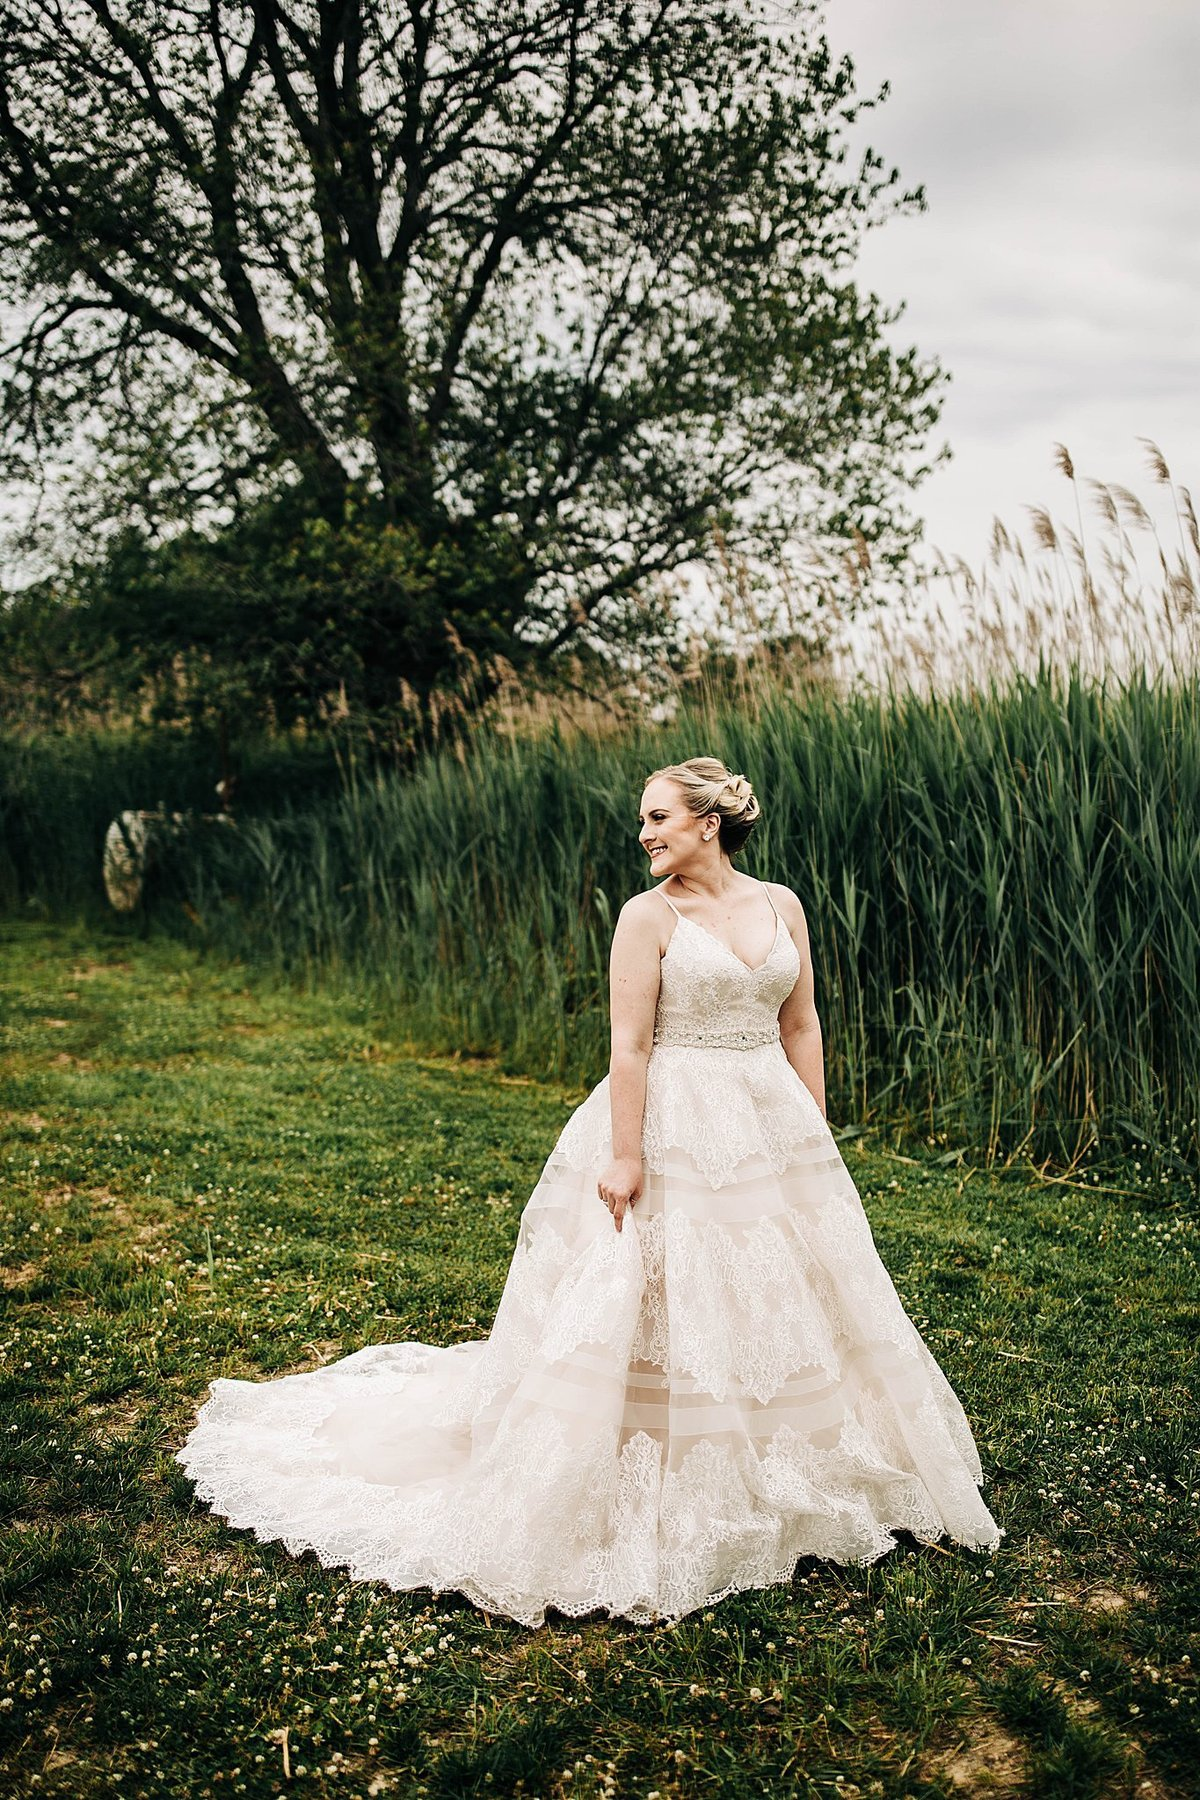 spring-wedding-thousand-acre-farm-delaware-rebecca-renner-photography_0036